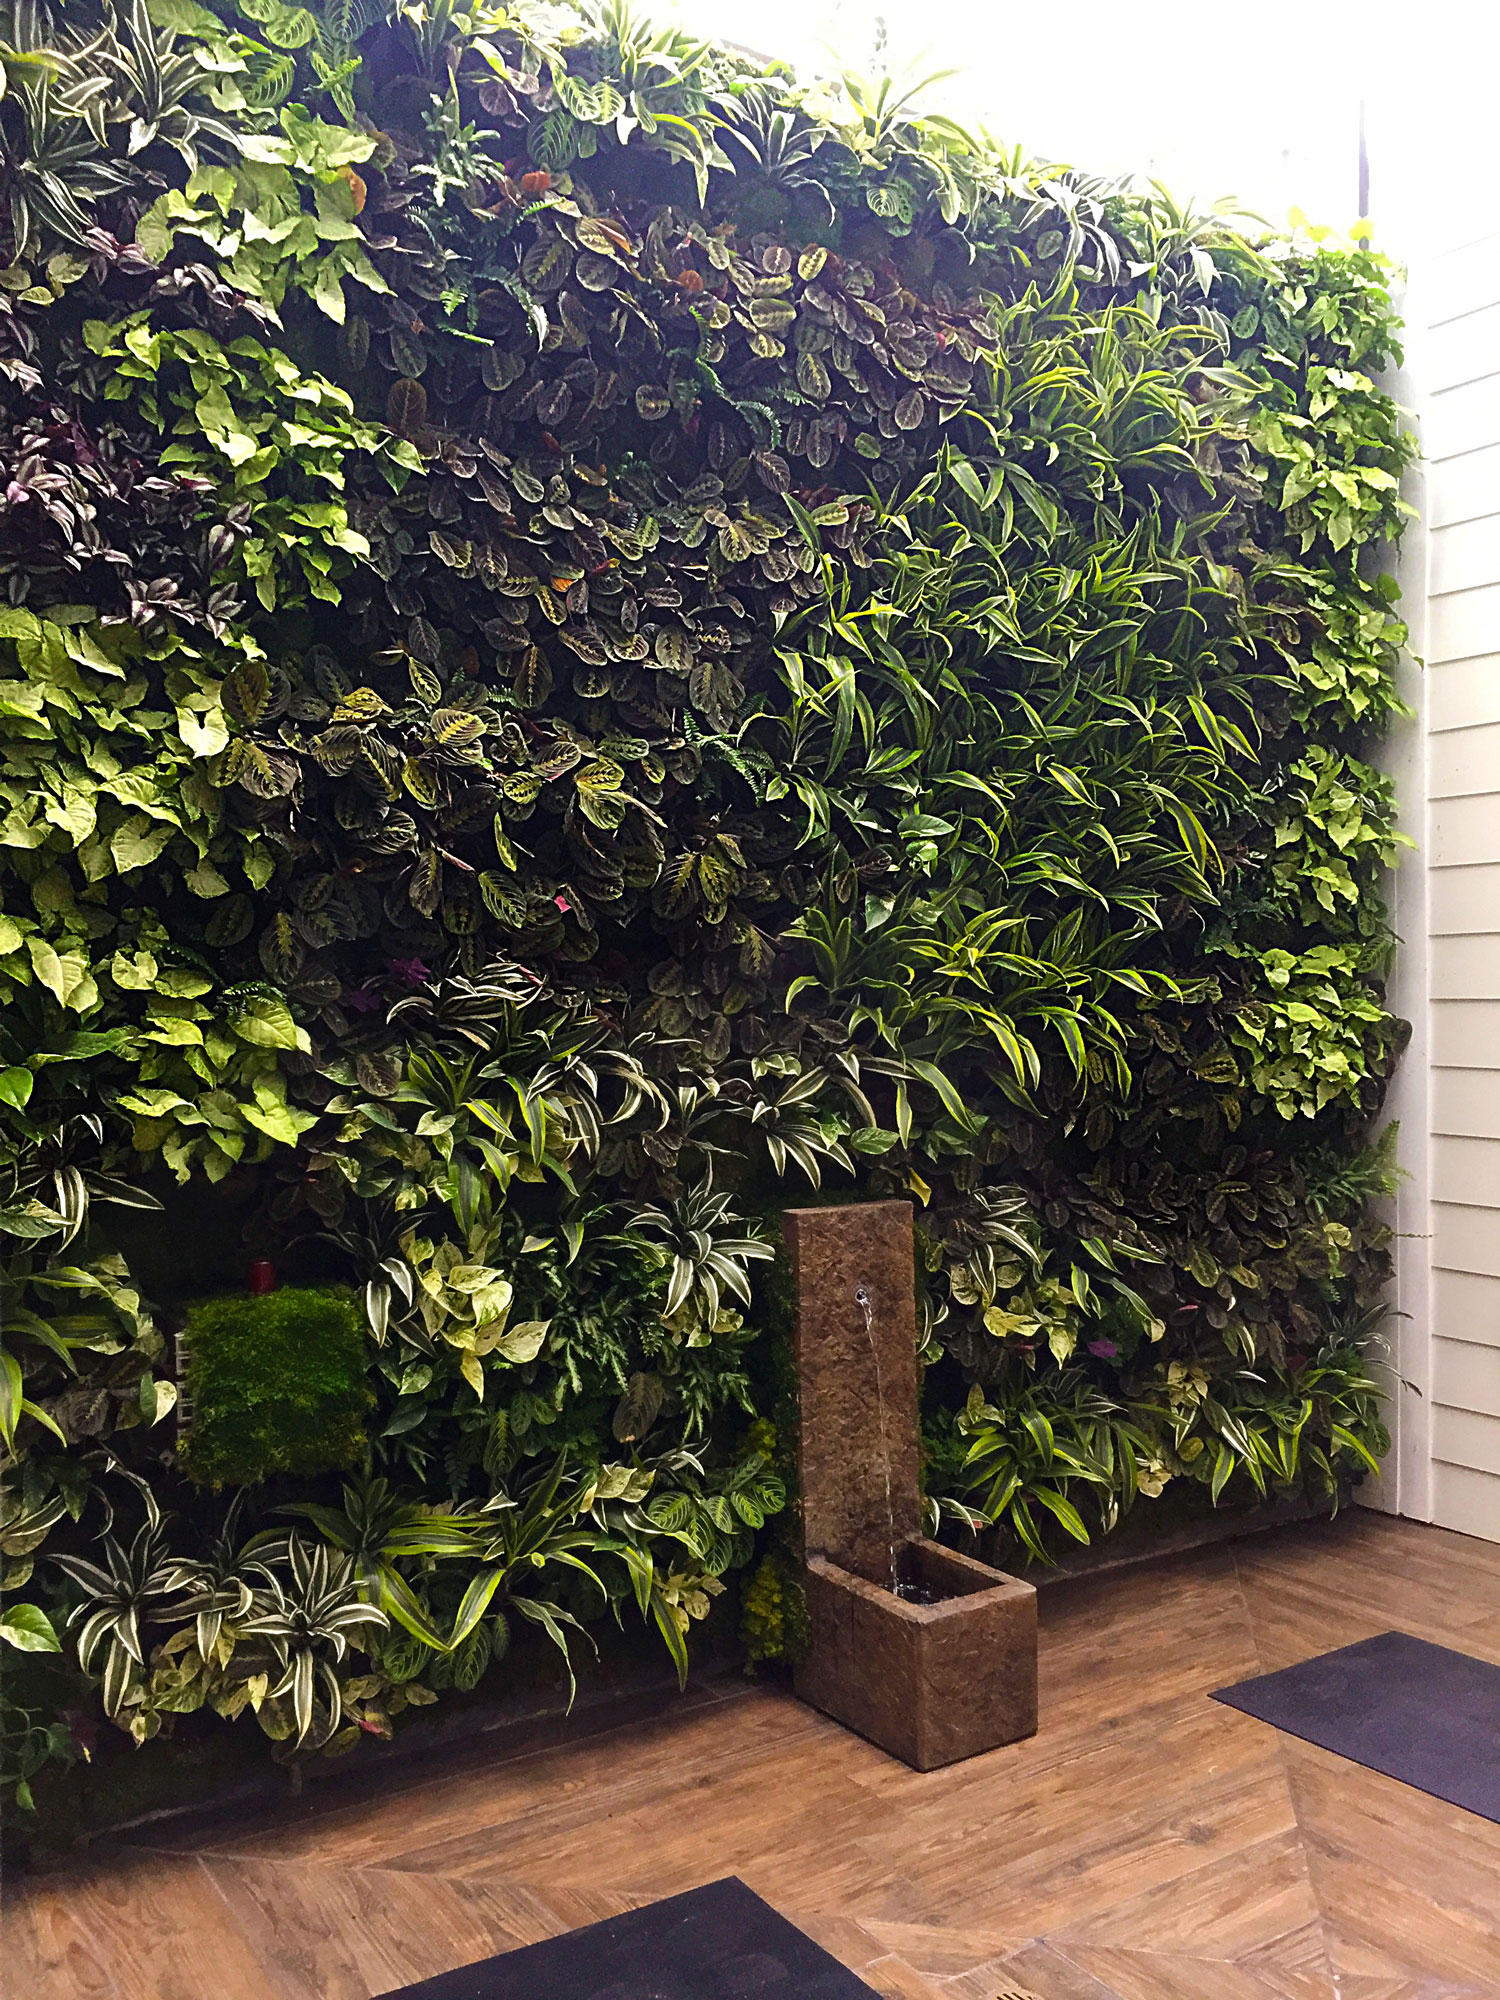 Living Wall: Effortless, near nature's power